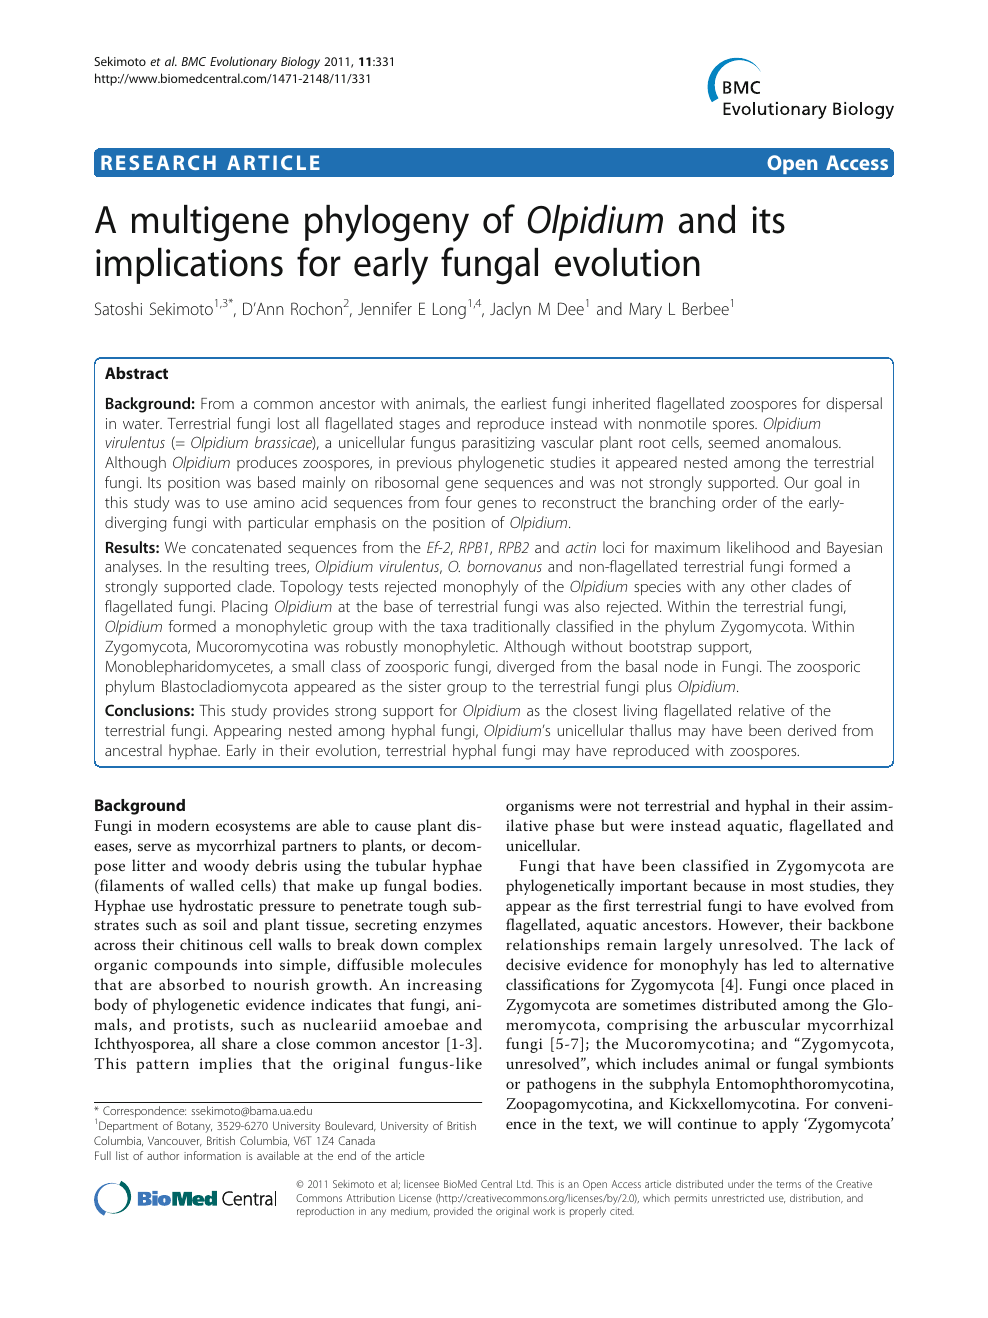 A multigene phylogeny of Olpidium and its implications for